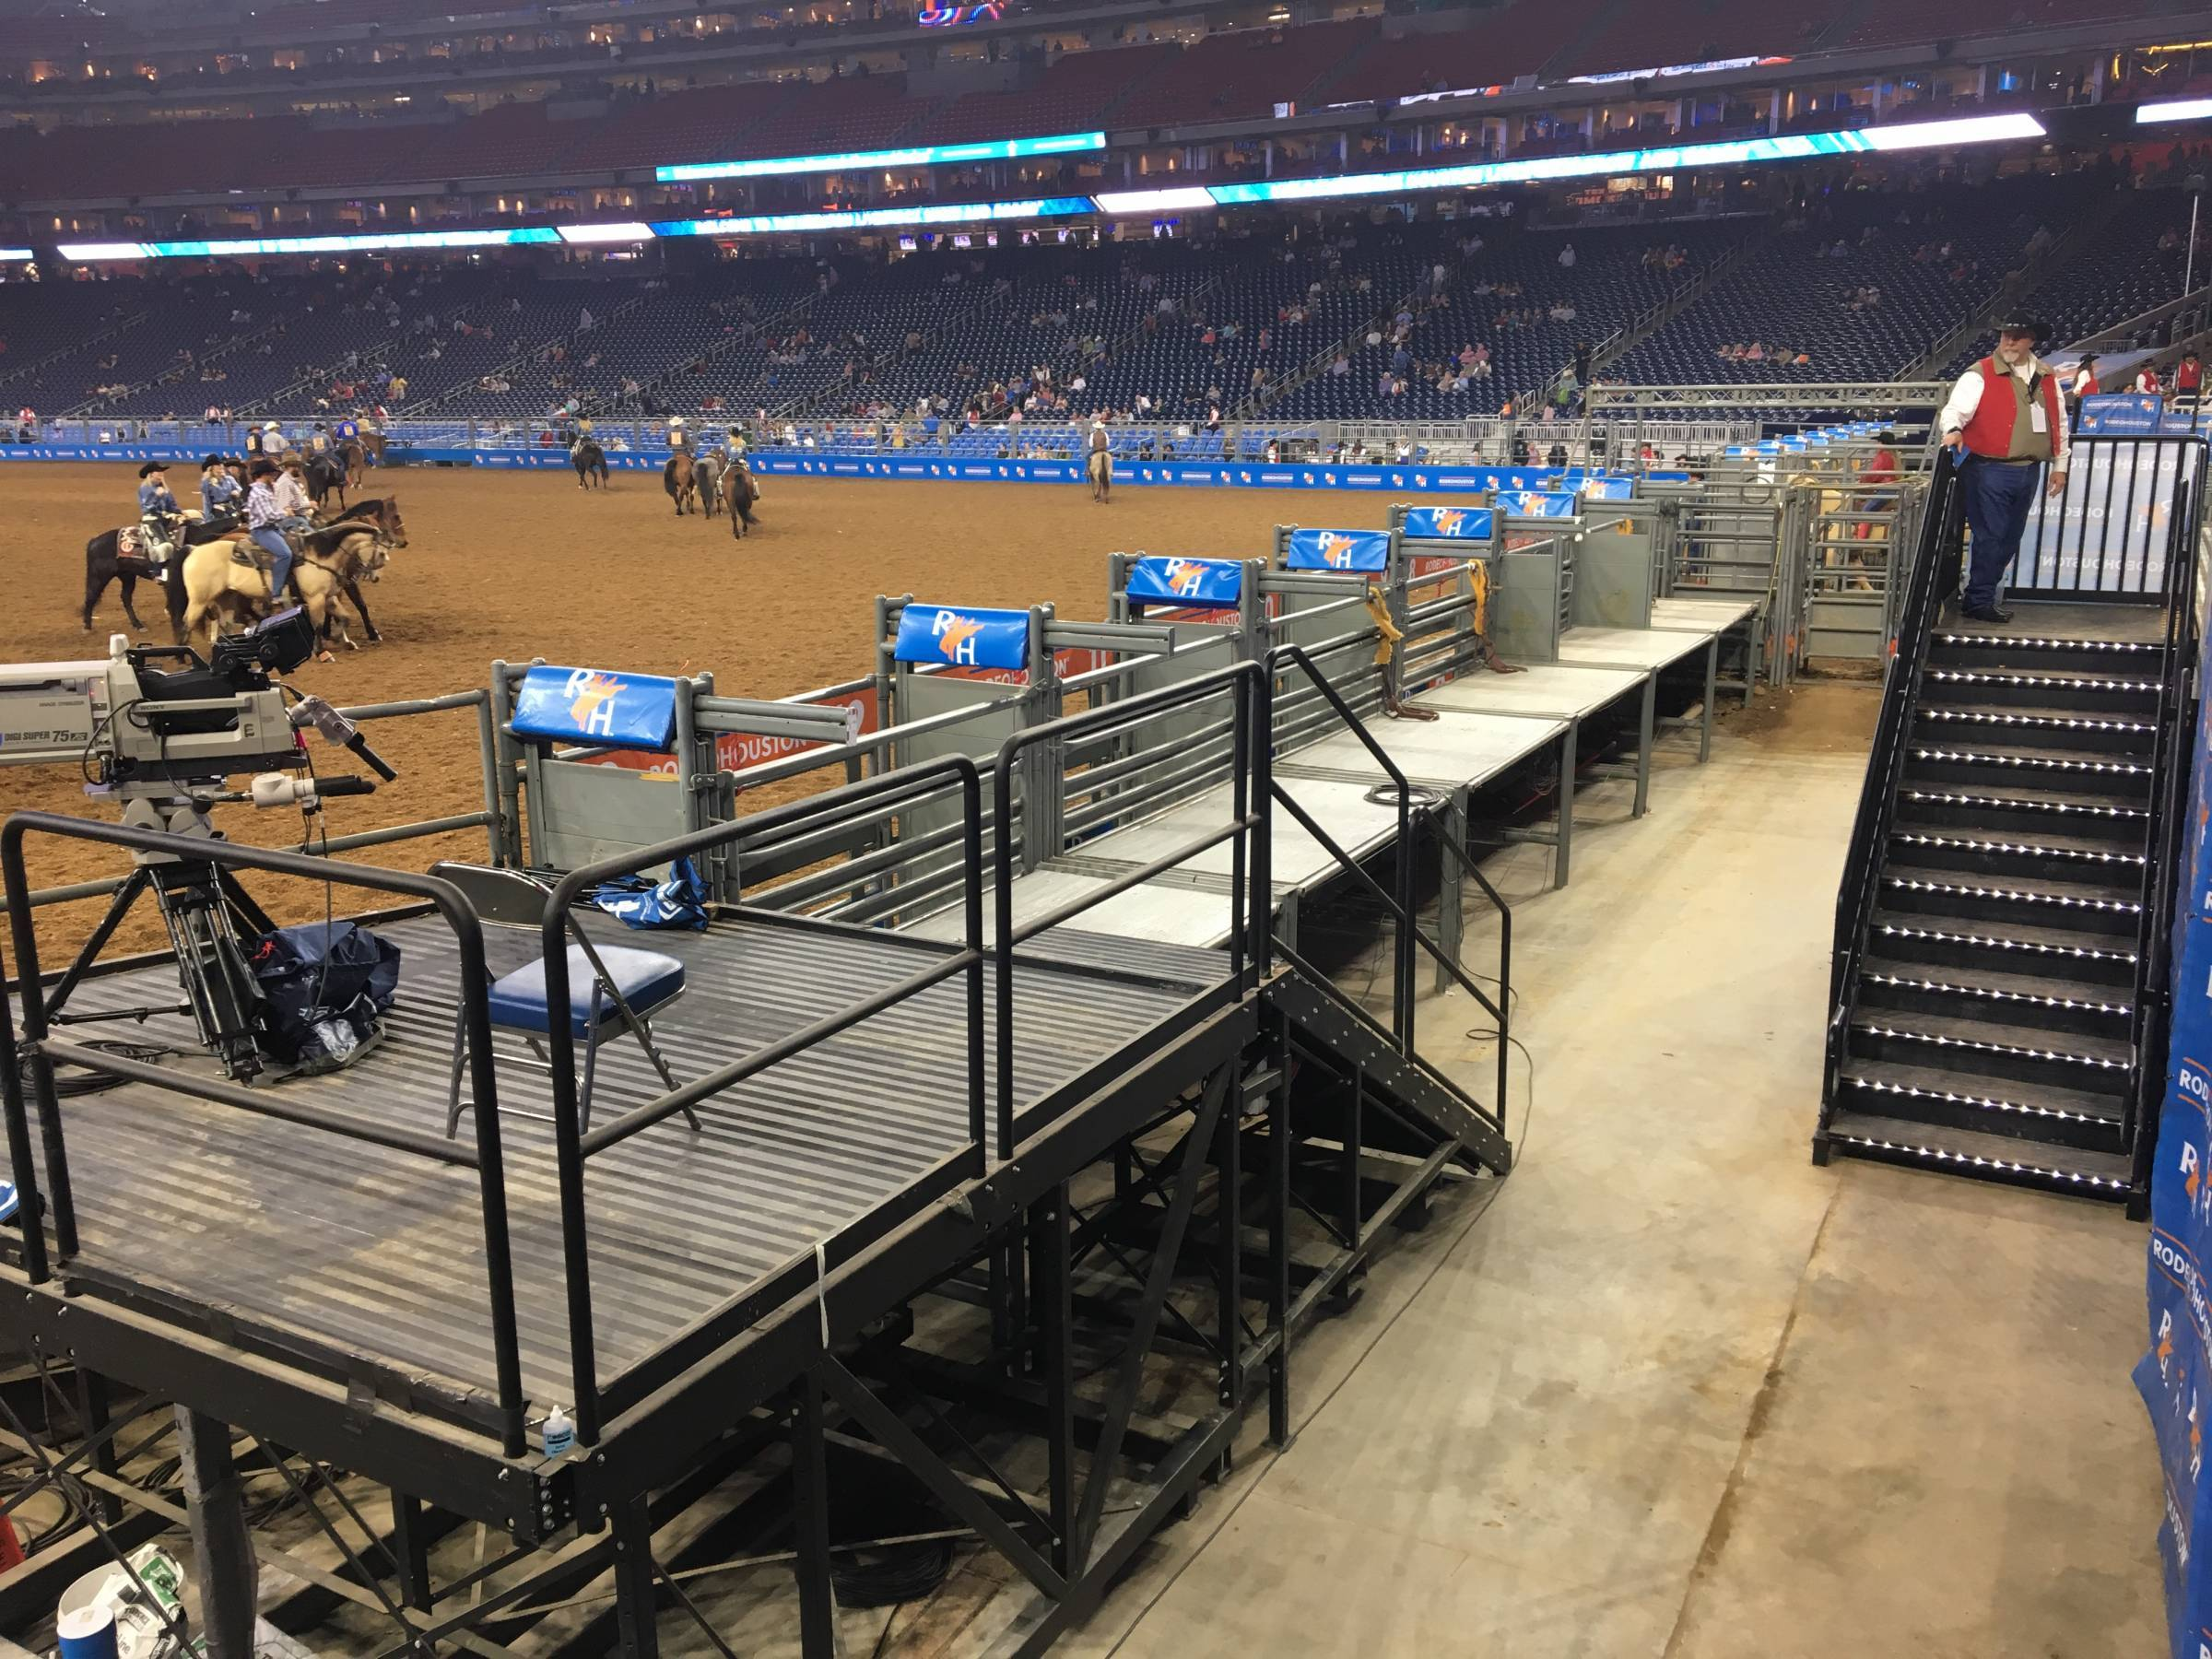 Chutes at the Houston Rodeo